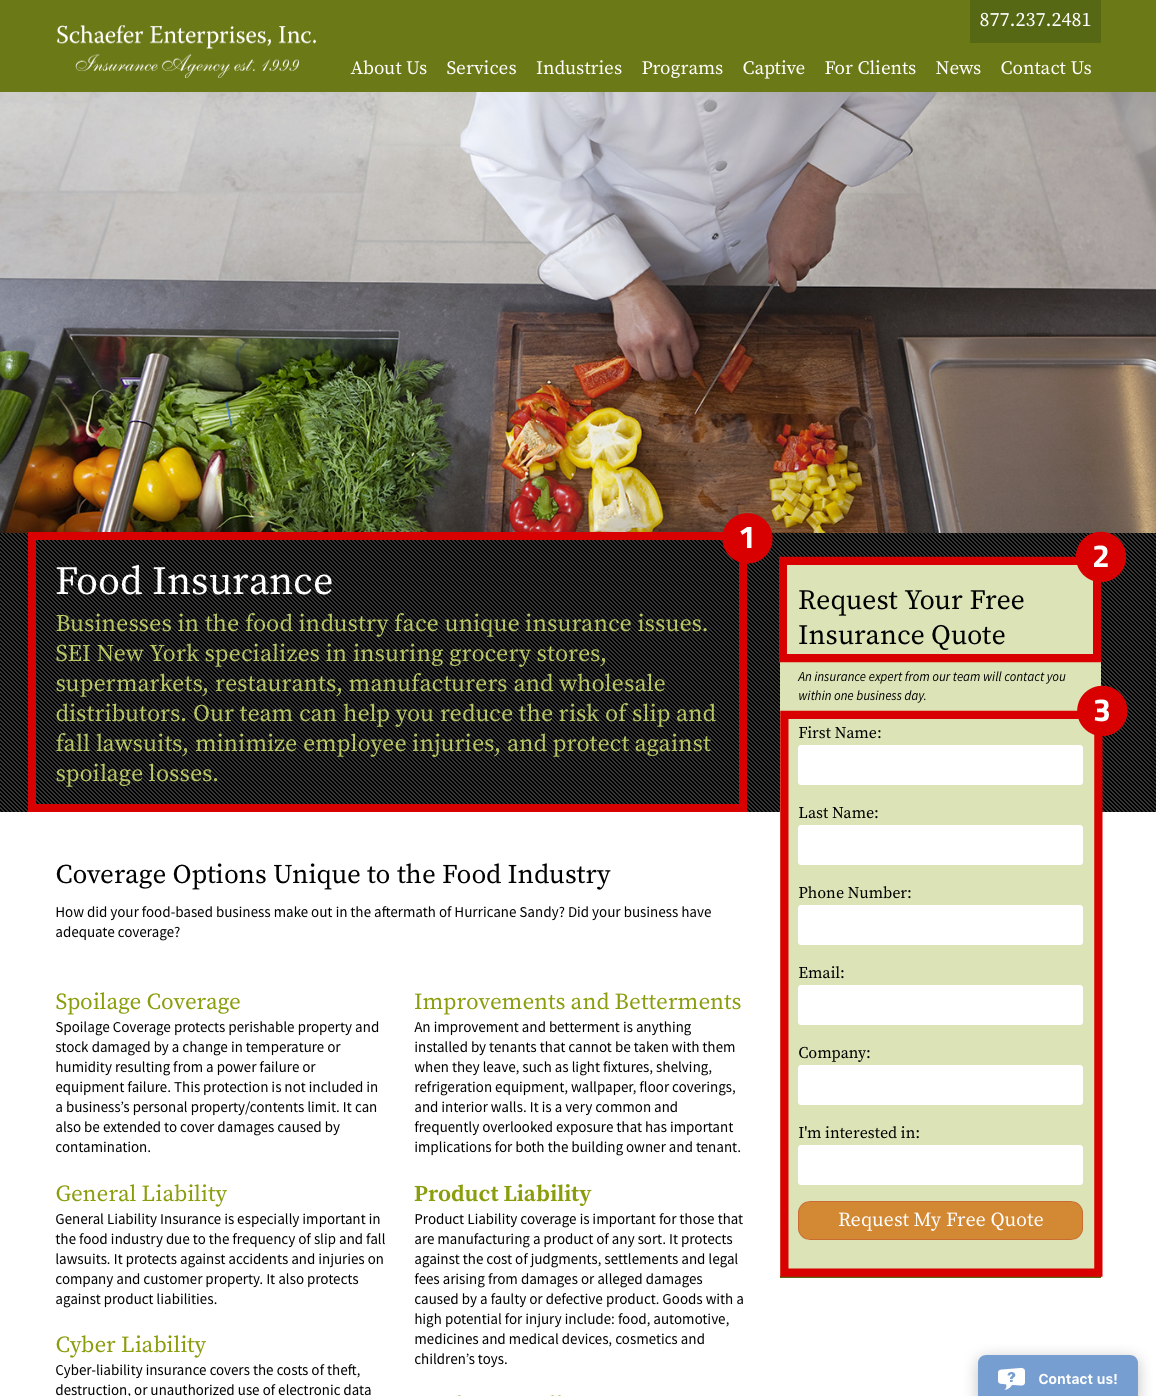 Schaefer Enterprises food insurance landing page design for SEO and lead engagement with a form and short description